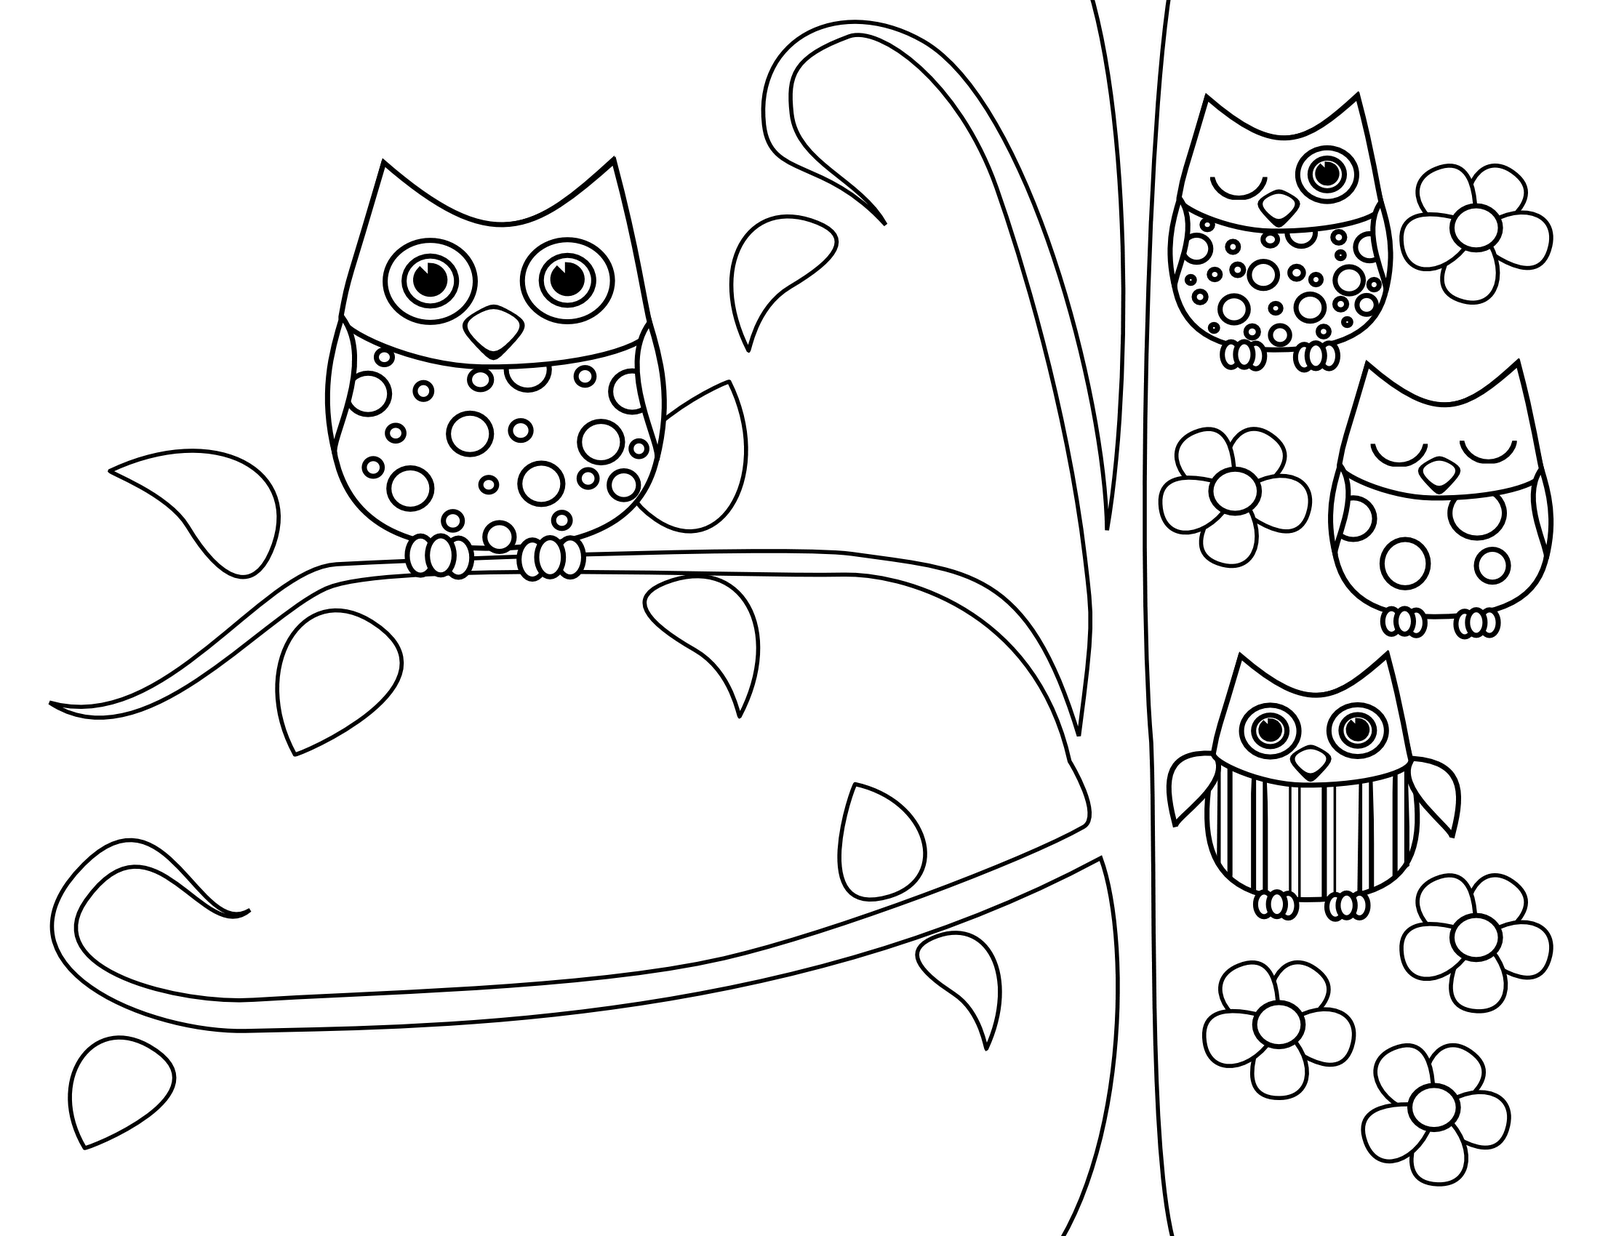 50 Coloring Pages For Adults Owls  Images